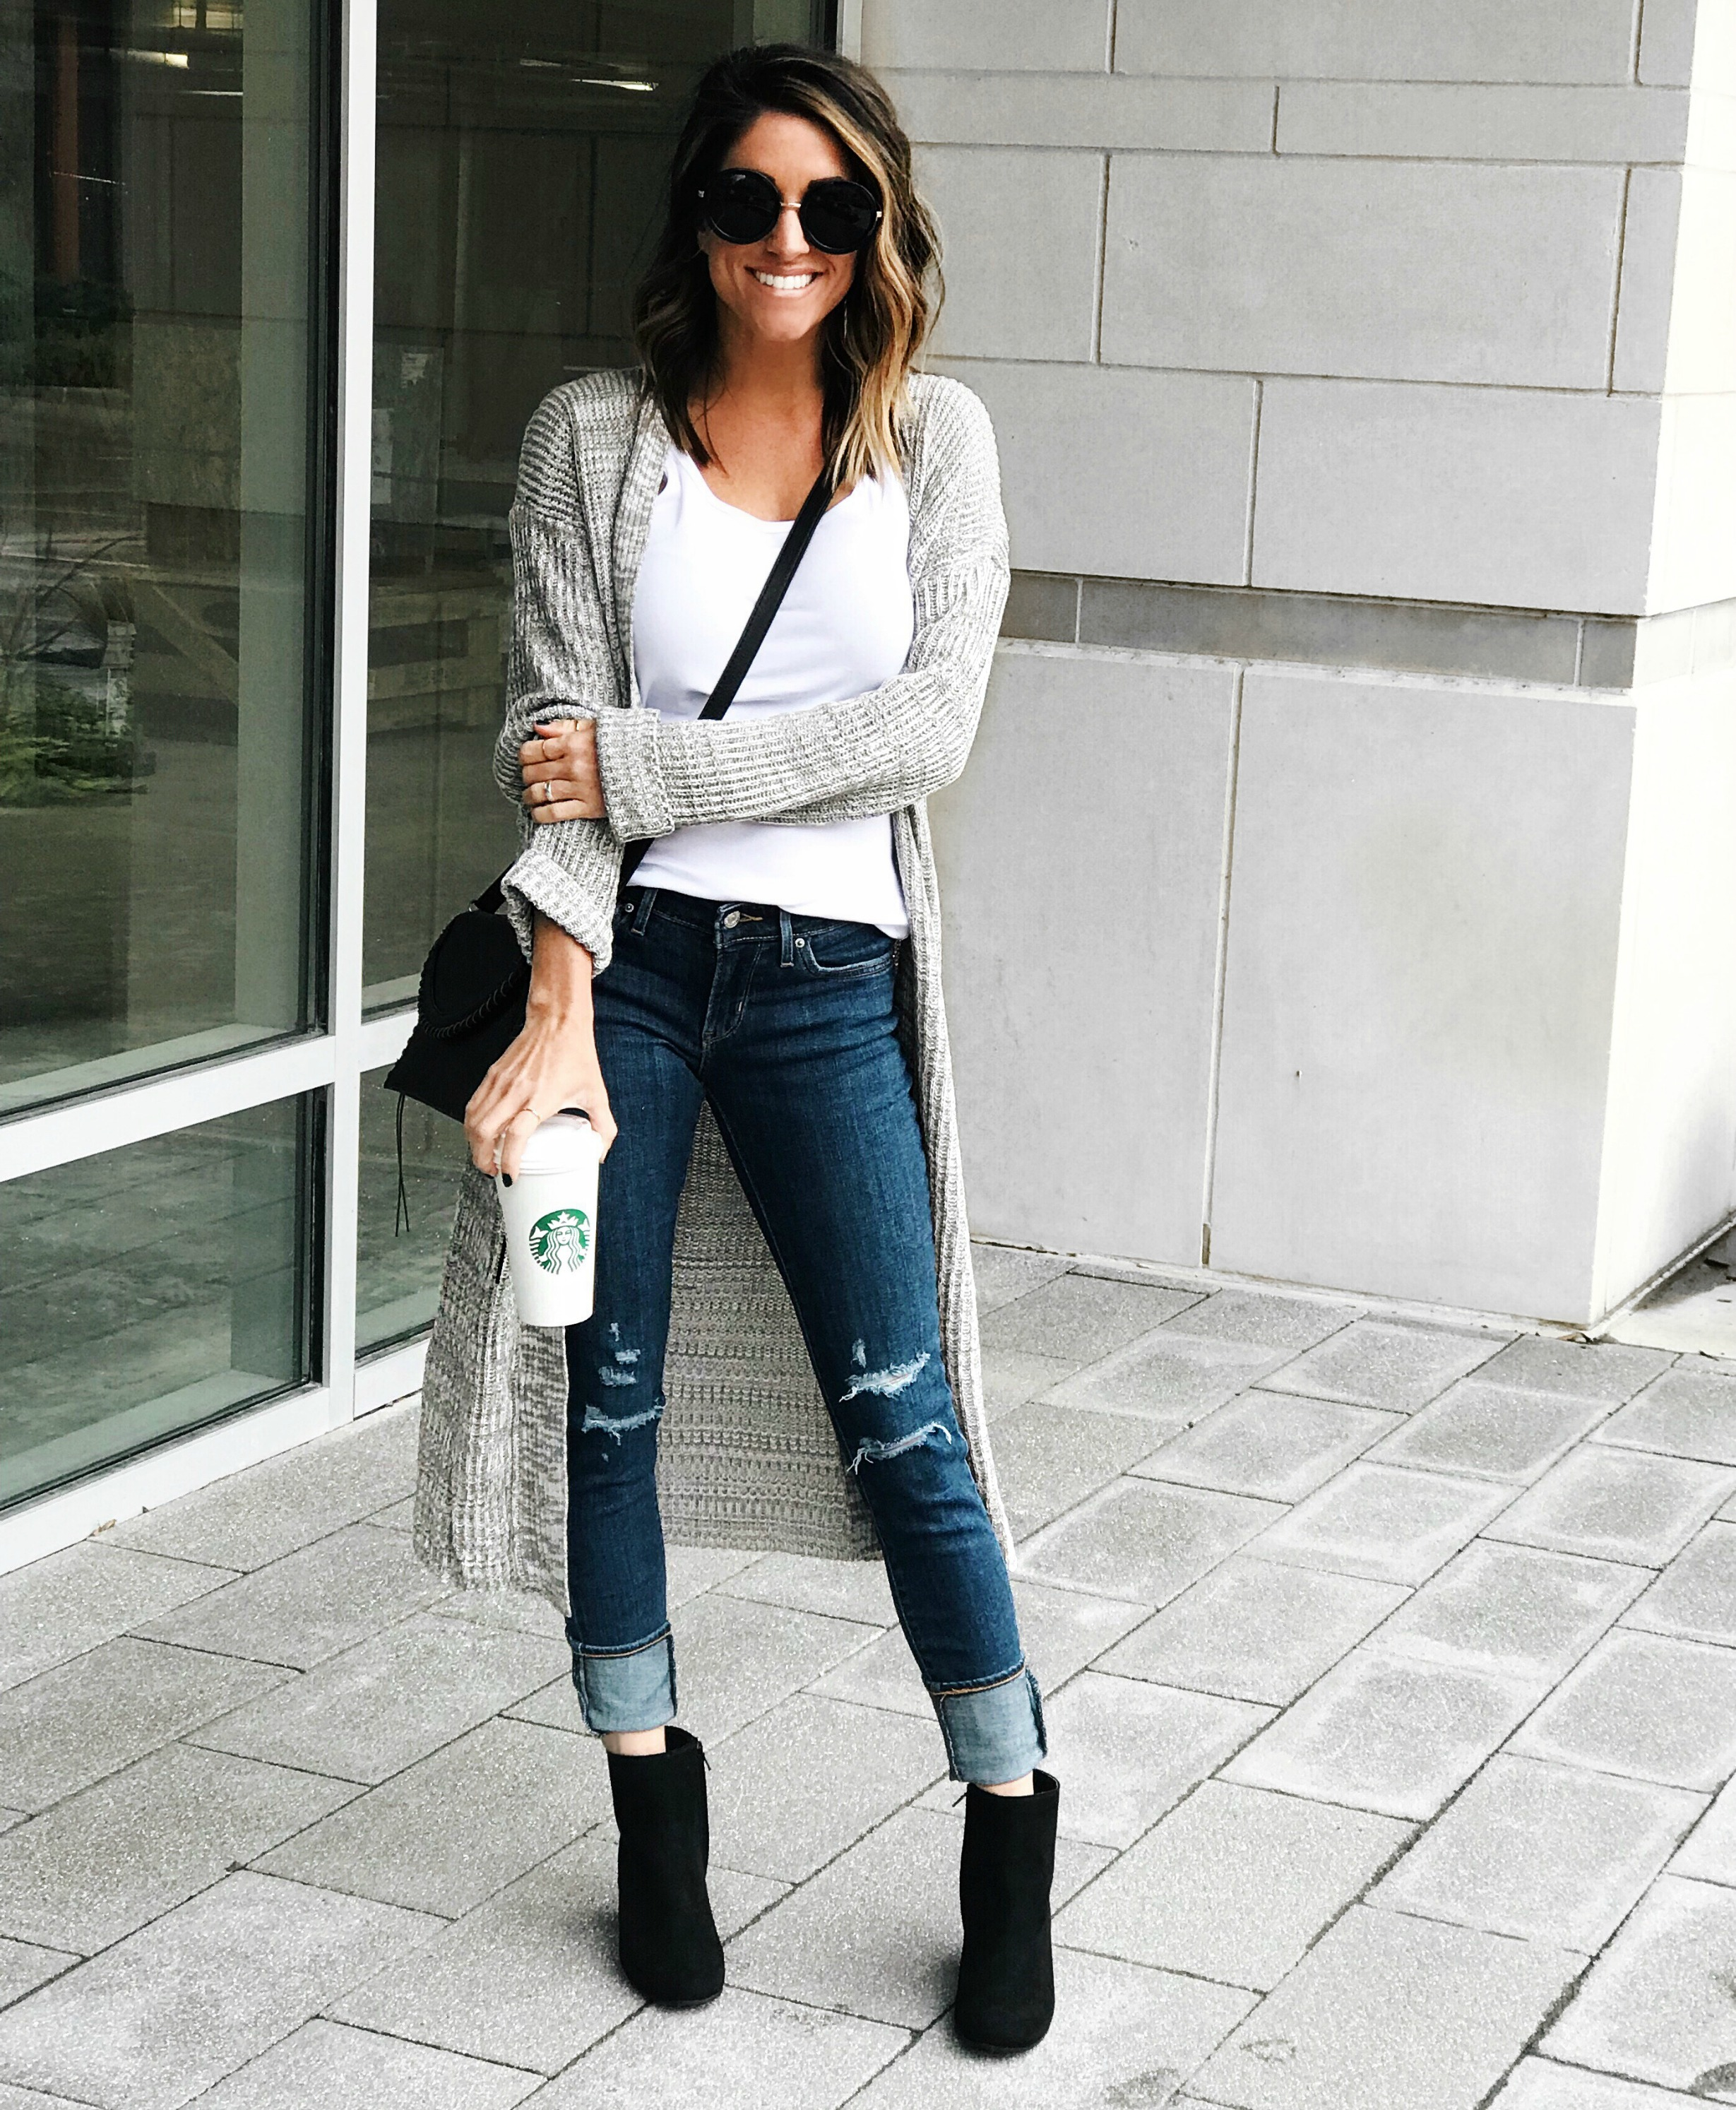 Jeans, cardigan, fall style